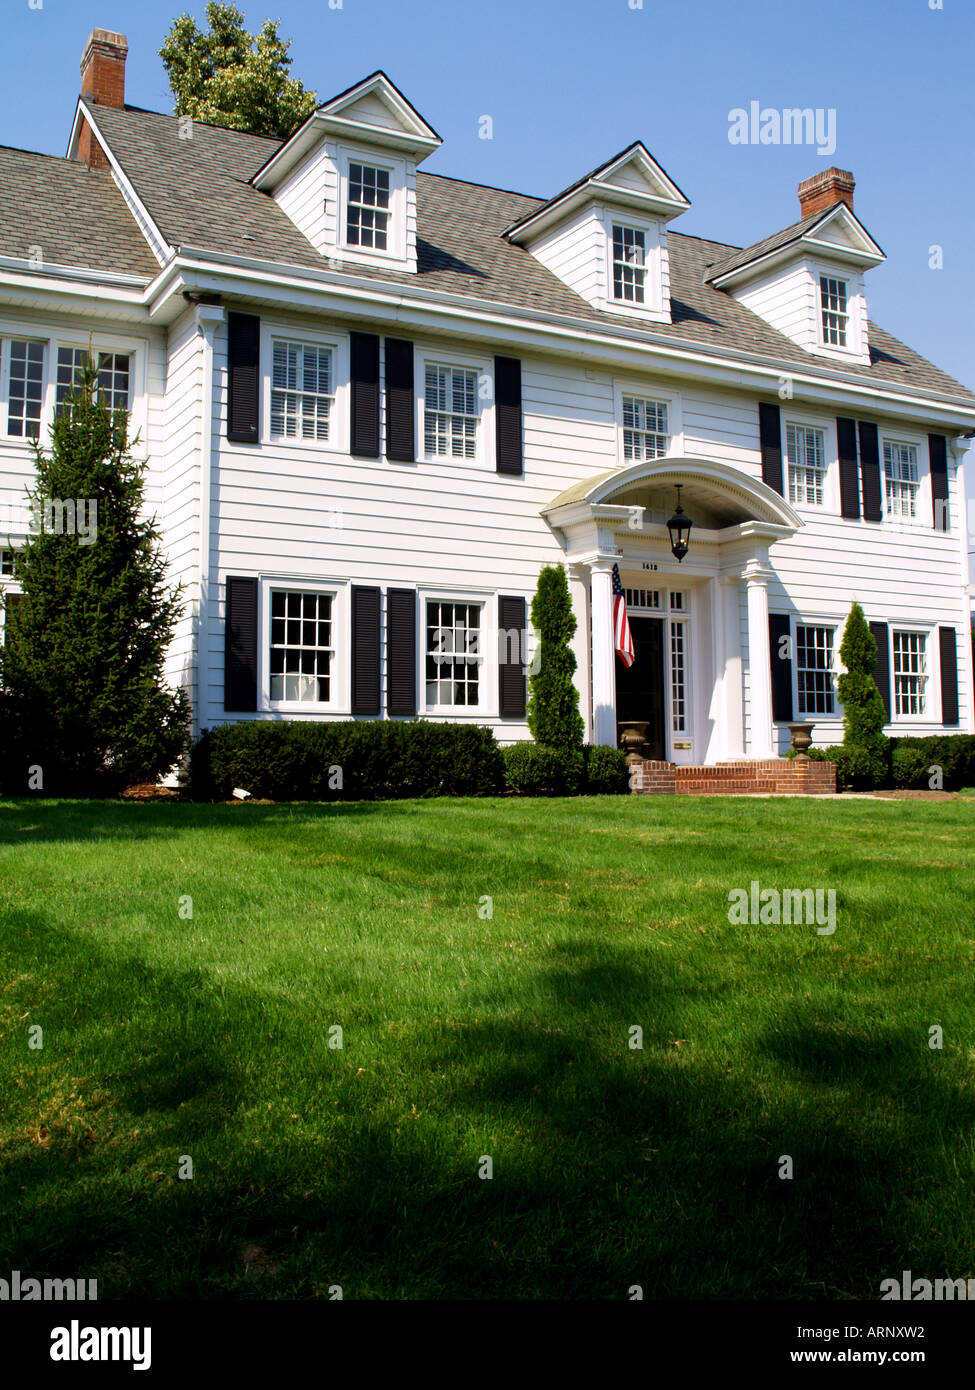 An elegant colonial style home - Stock Image